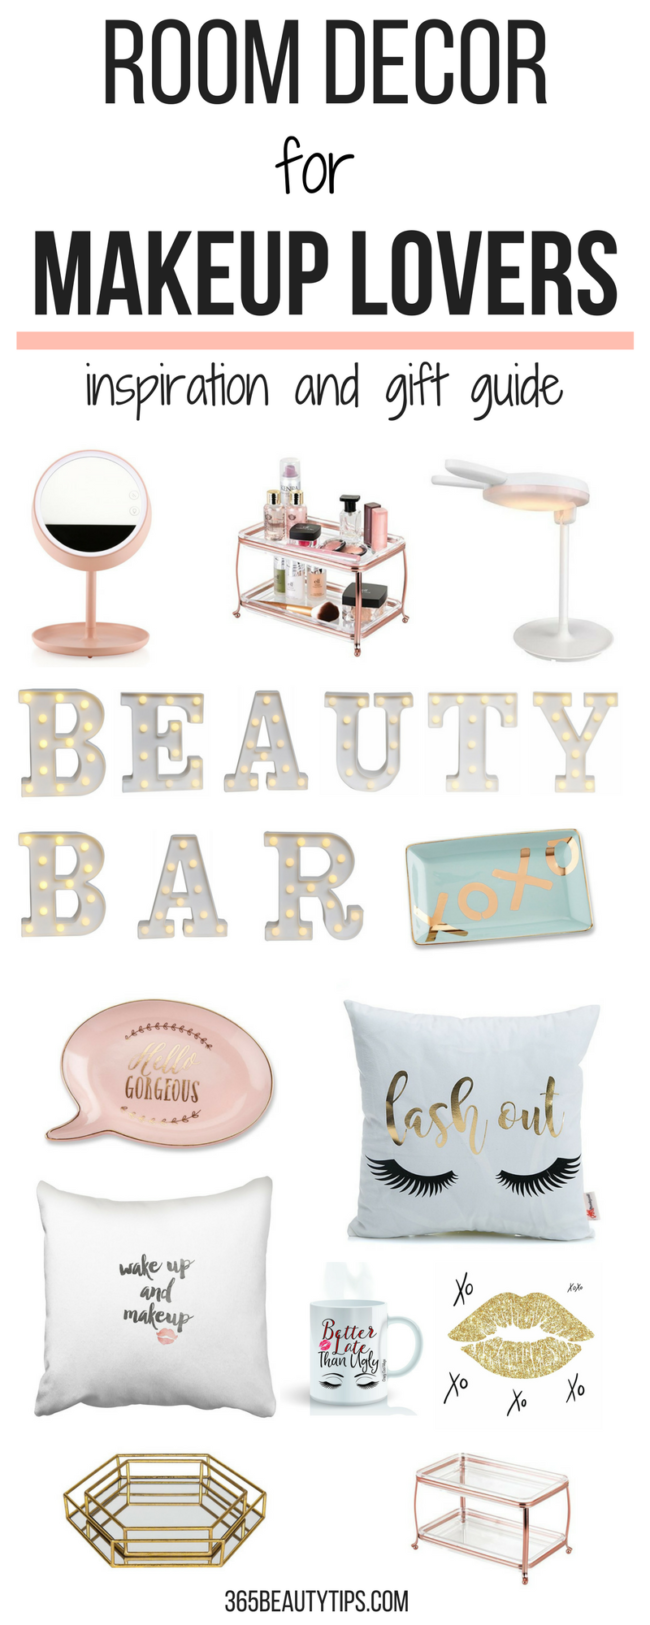 Room decor for makeup lovers - a list of practical, decorative items that any makeup lover would love to own. Use it as a gift guide or glam up your room!